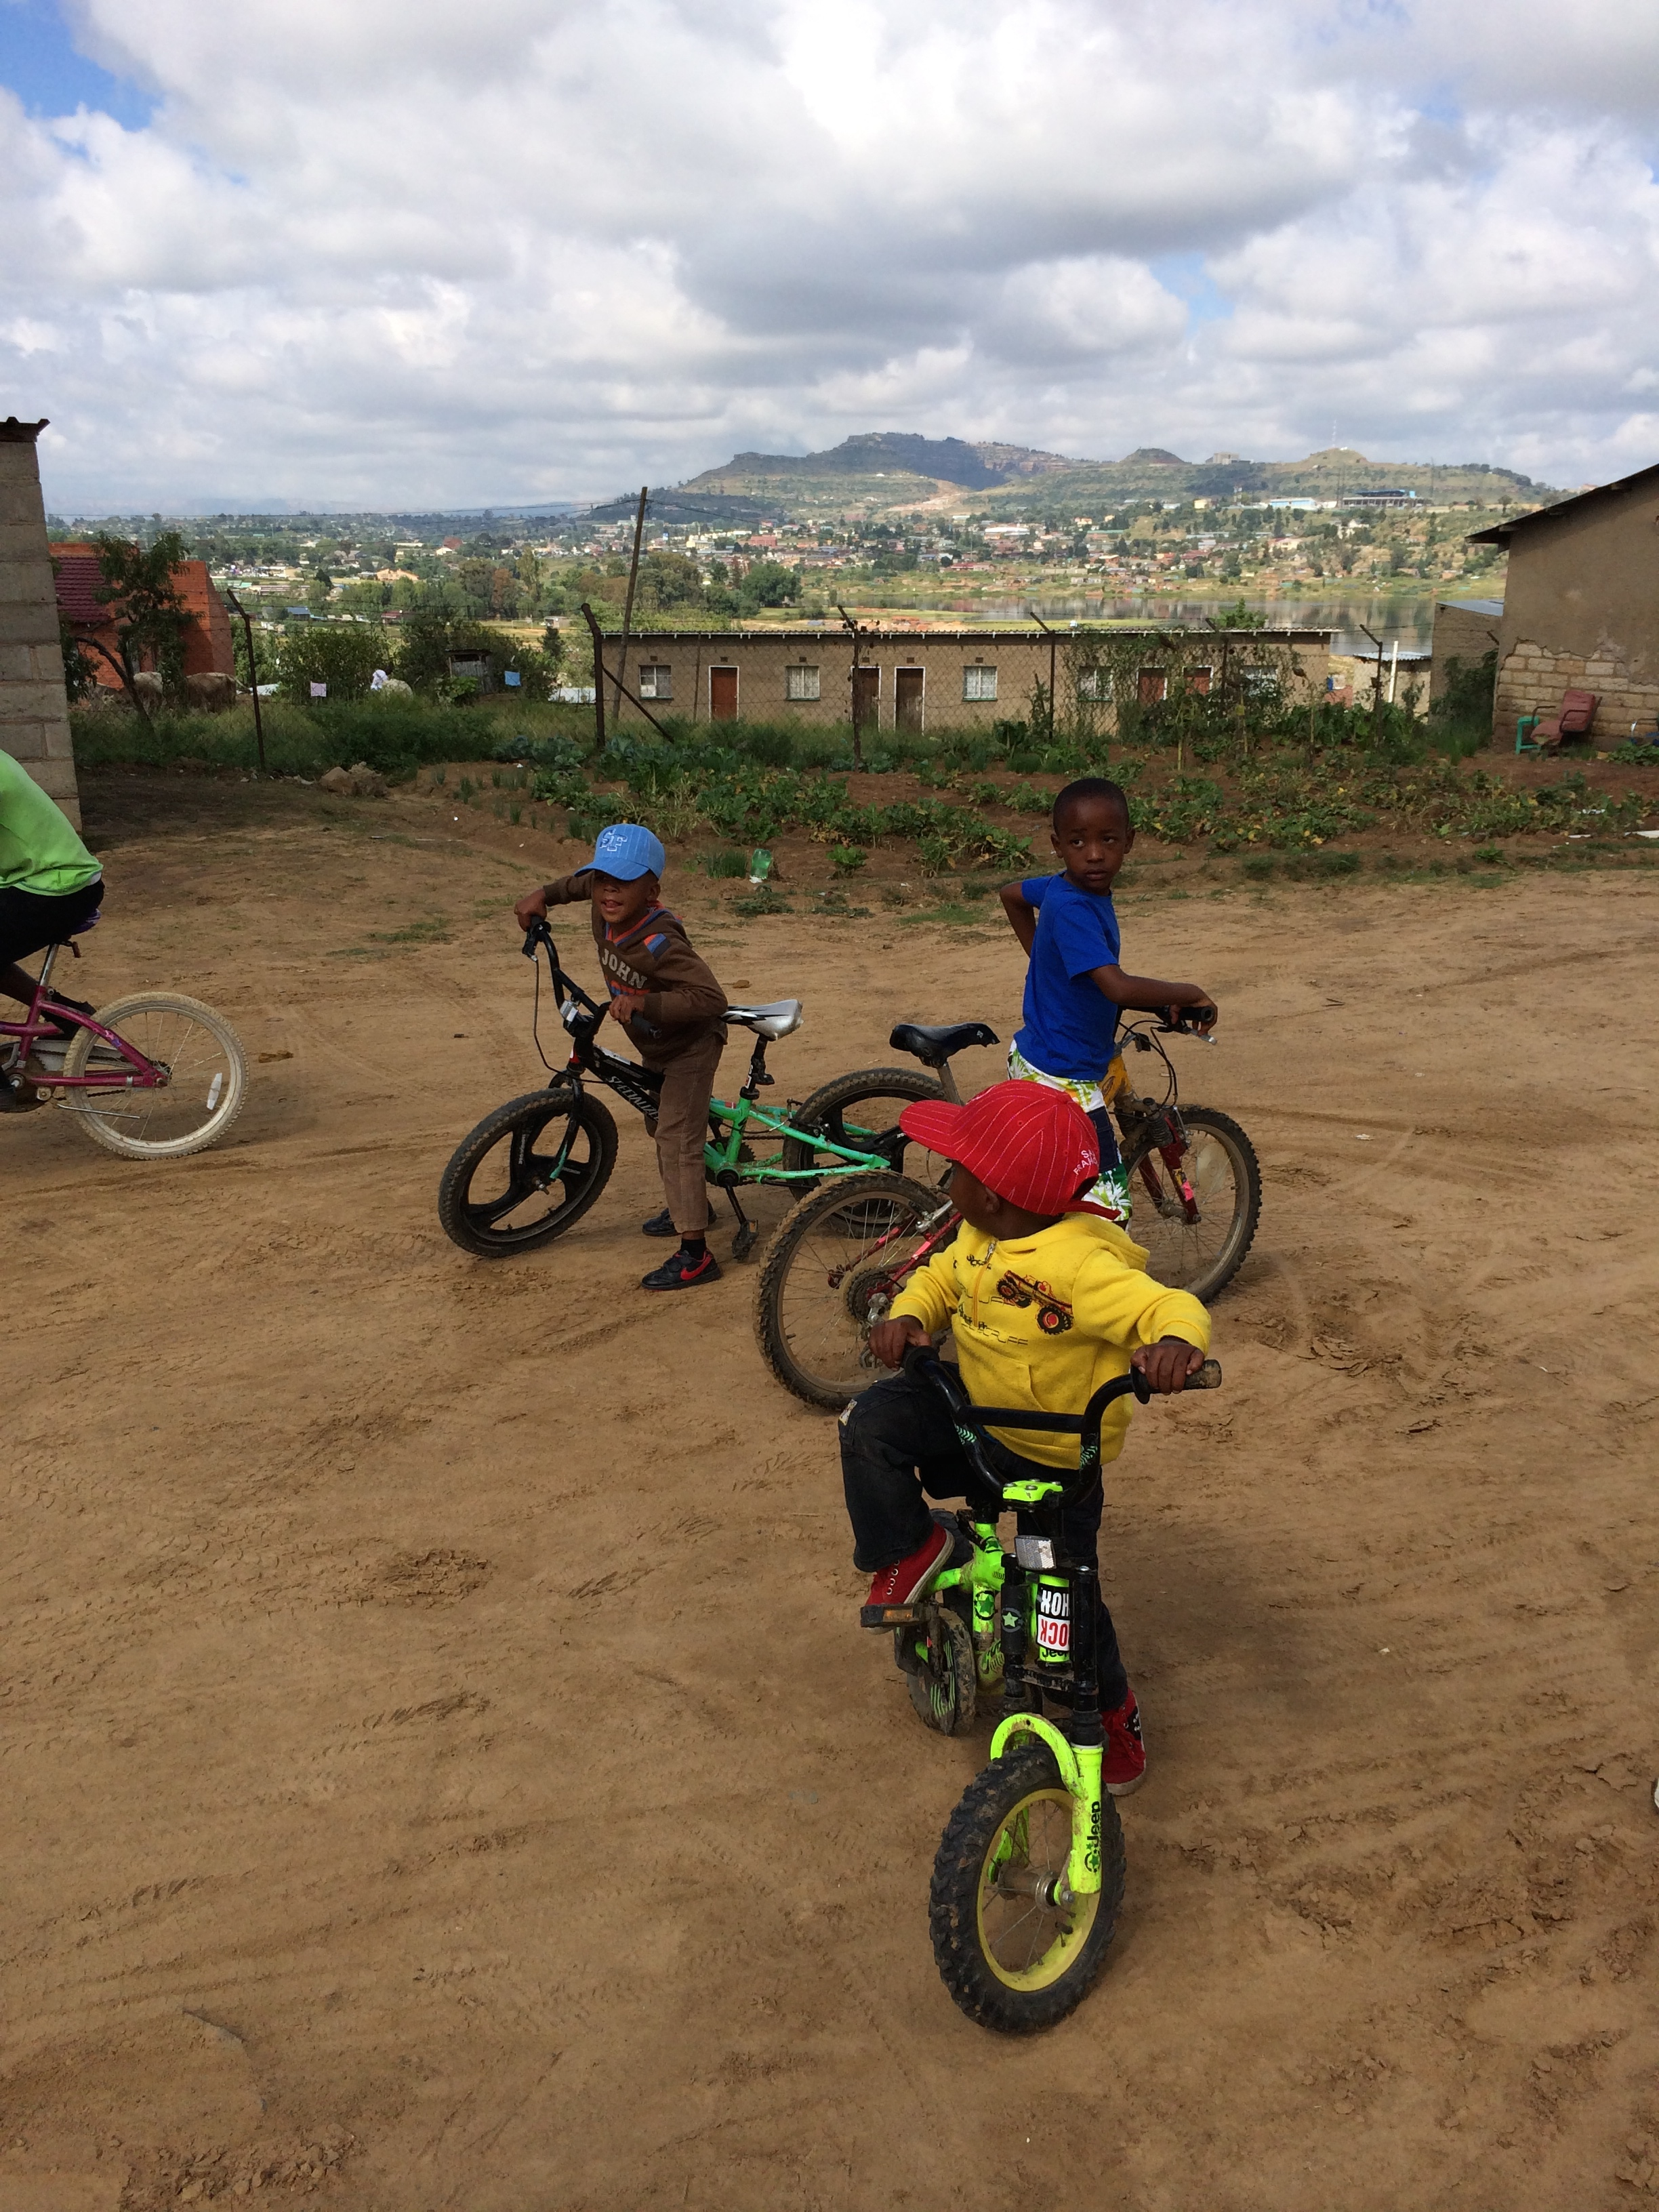 The future of cycling in Lesotho looks bright.